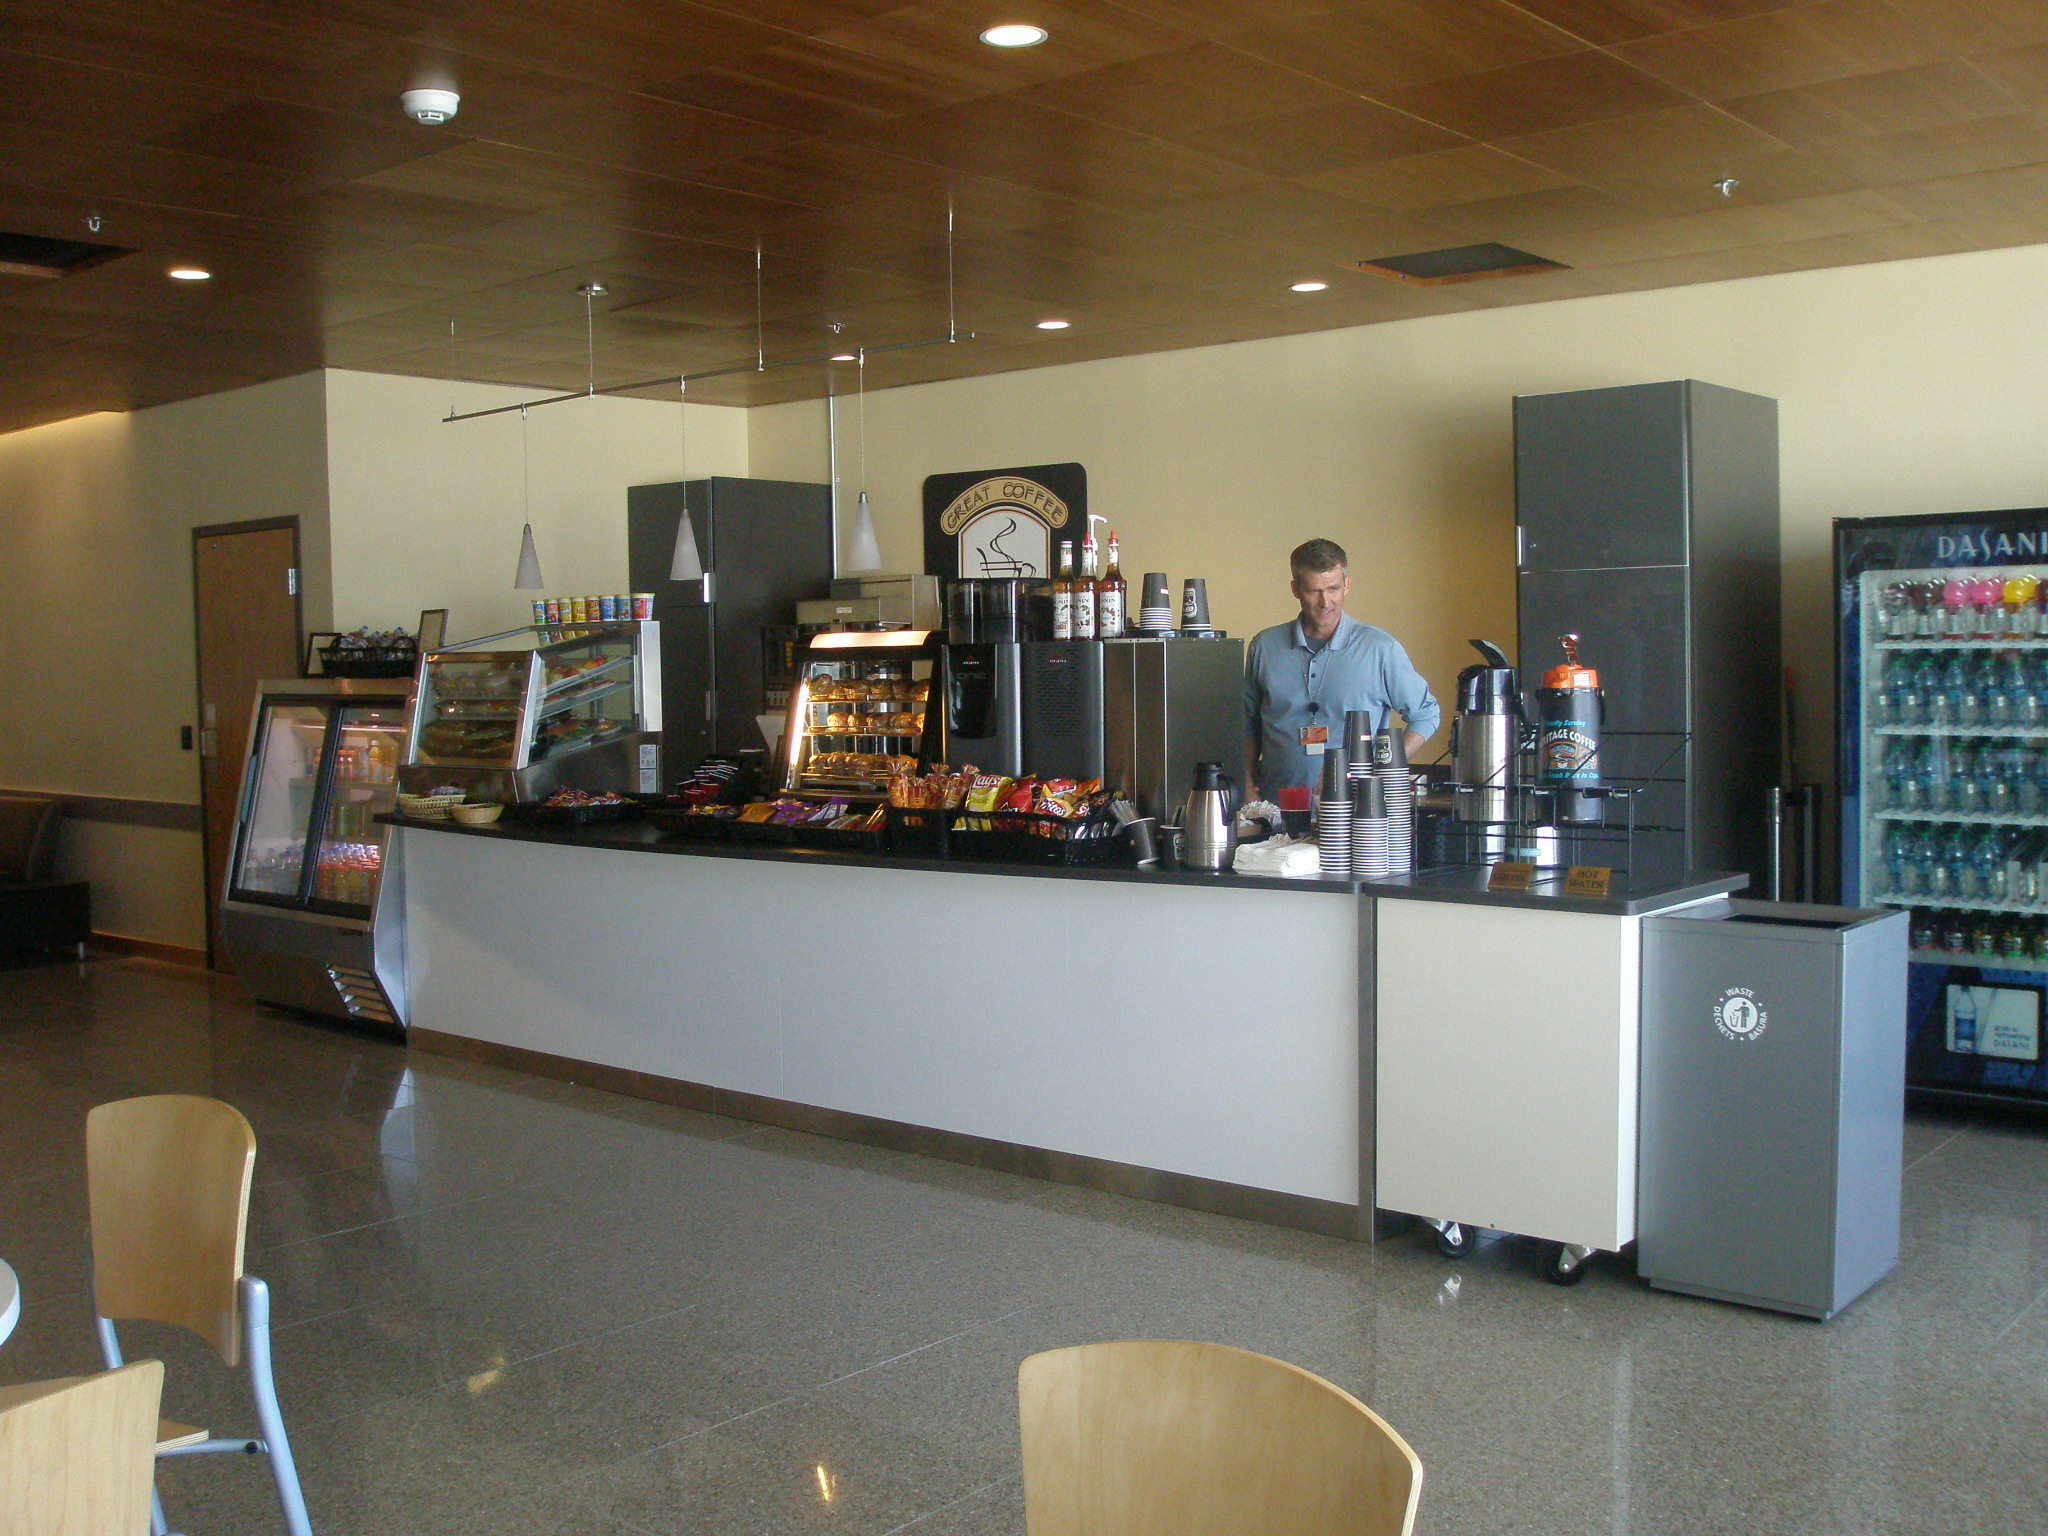 Prior to the new concession stand in the Juneau airport, the only options for travelers' to purchase food or beverage in the departure lounge was  from vending machines (Photo courtesy of Juneau International Airport)